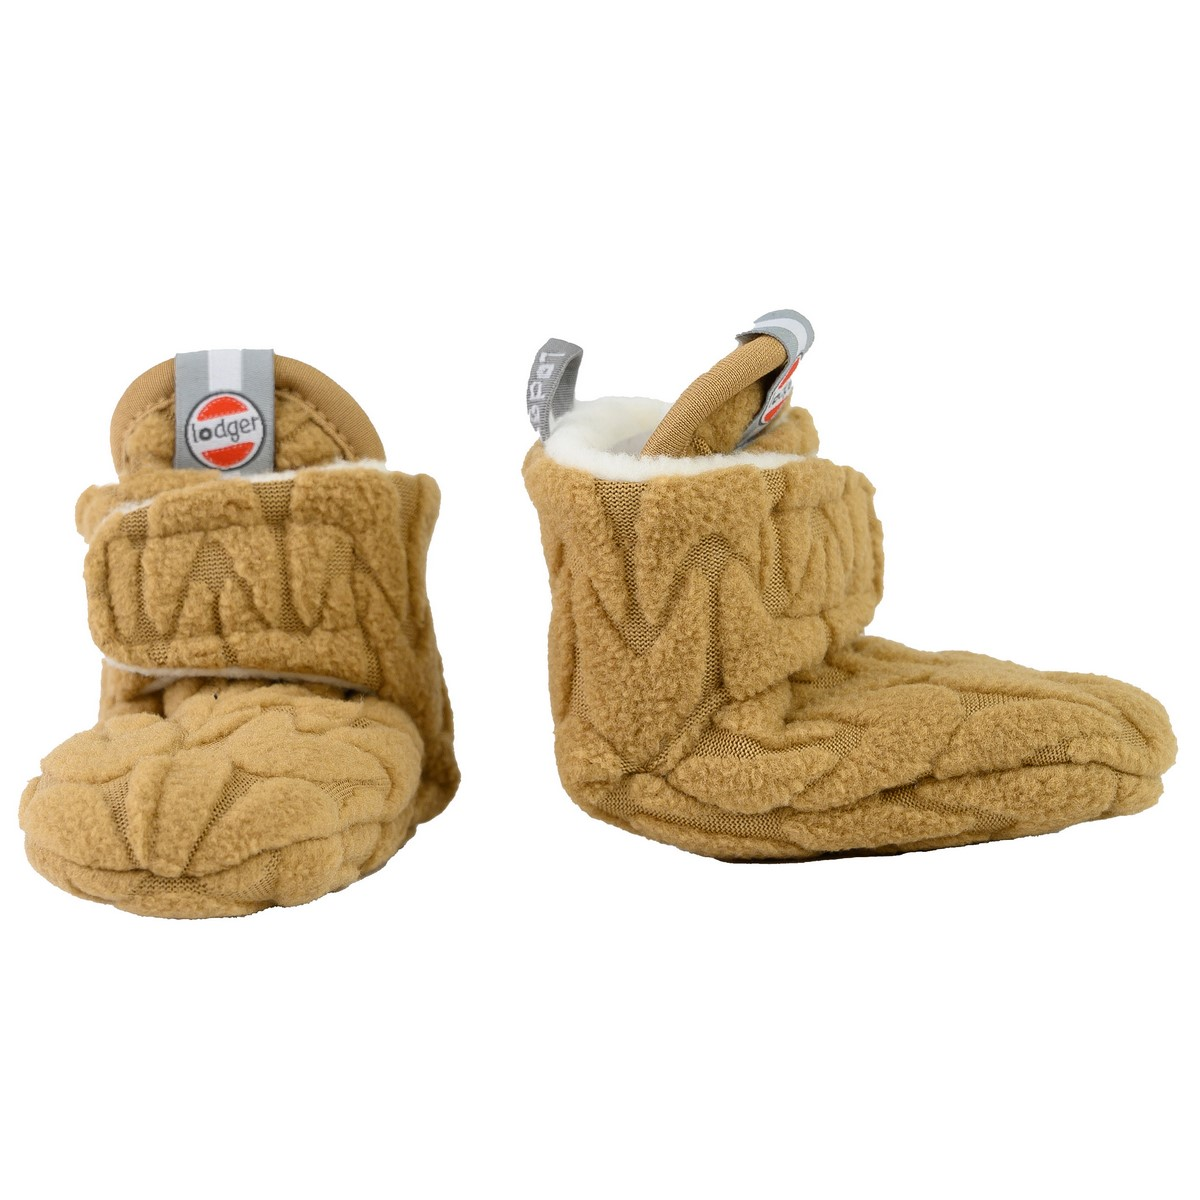 LODGER Slipper Fleece Empire Dark Honey 6 - 12 měsíců